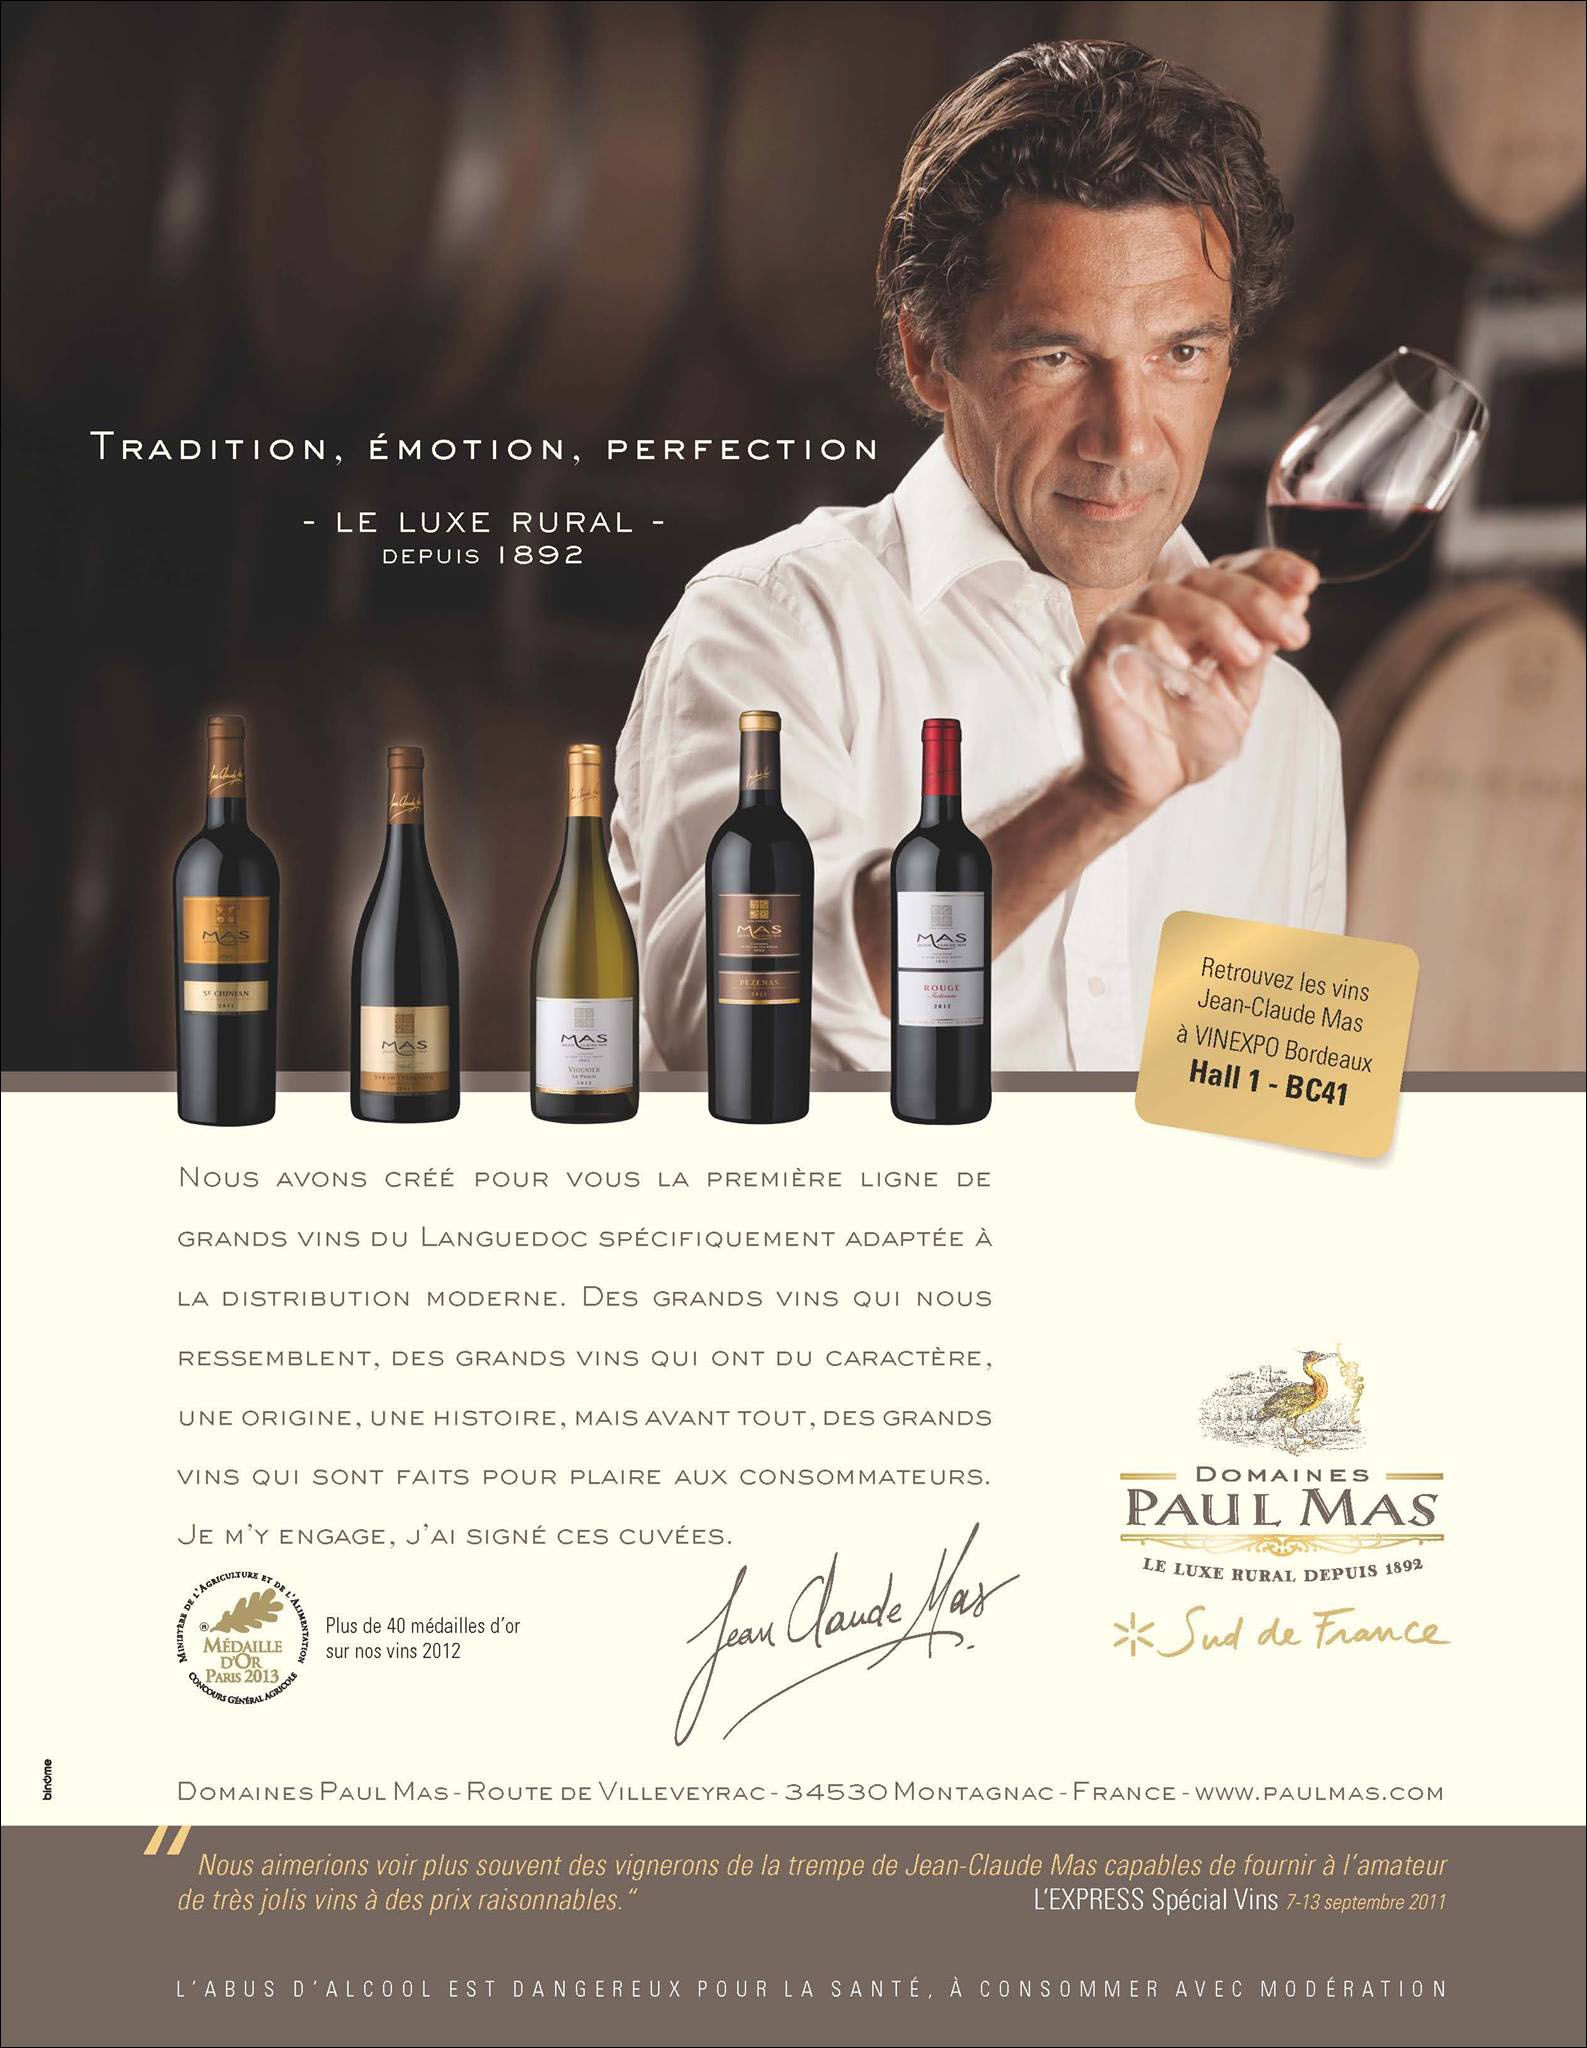 Domaine Paul Mas - Vins et spiritueux - they make the best Malbec but I can never find it